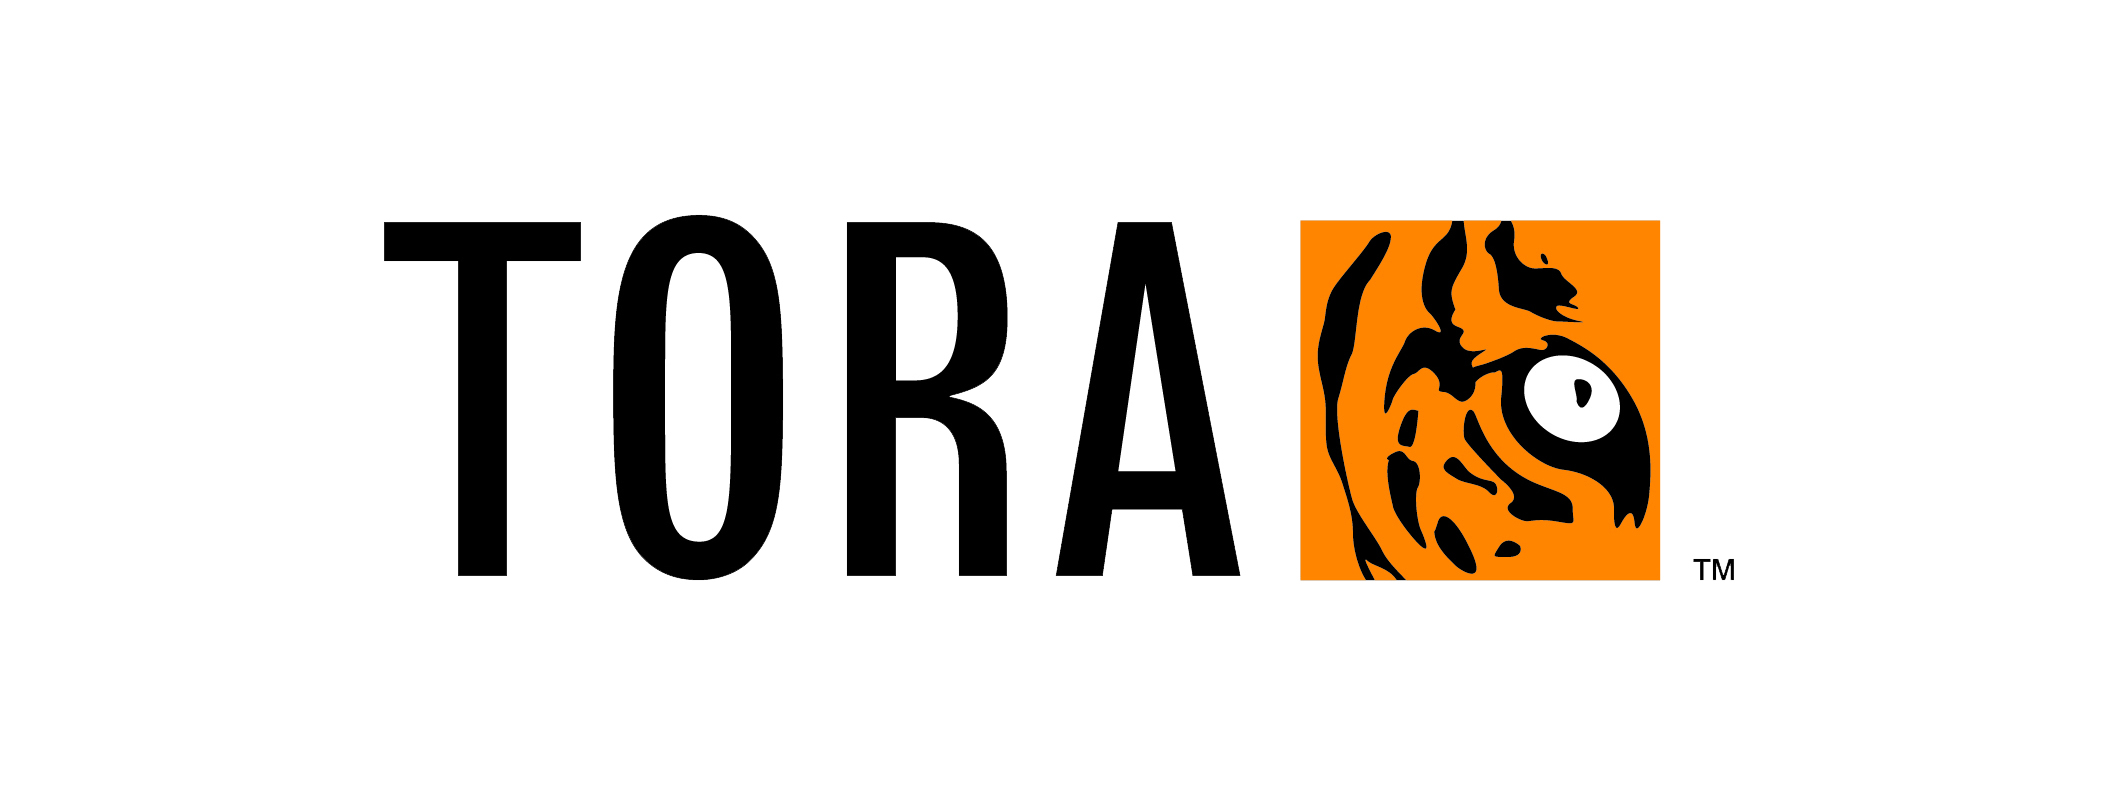 TORA's OEMS Integrates with Liquidnet's IA Trader to Offer Real Time Actionable Decision Making Tools